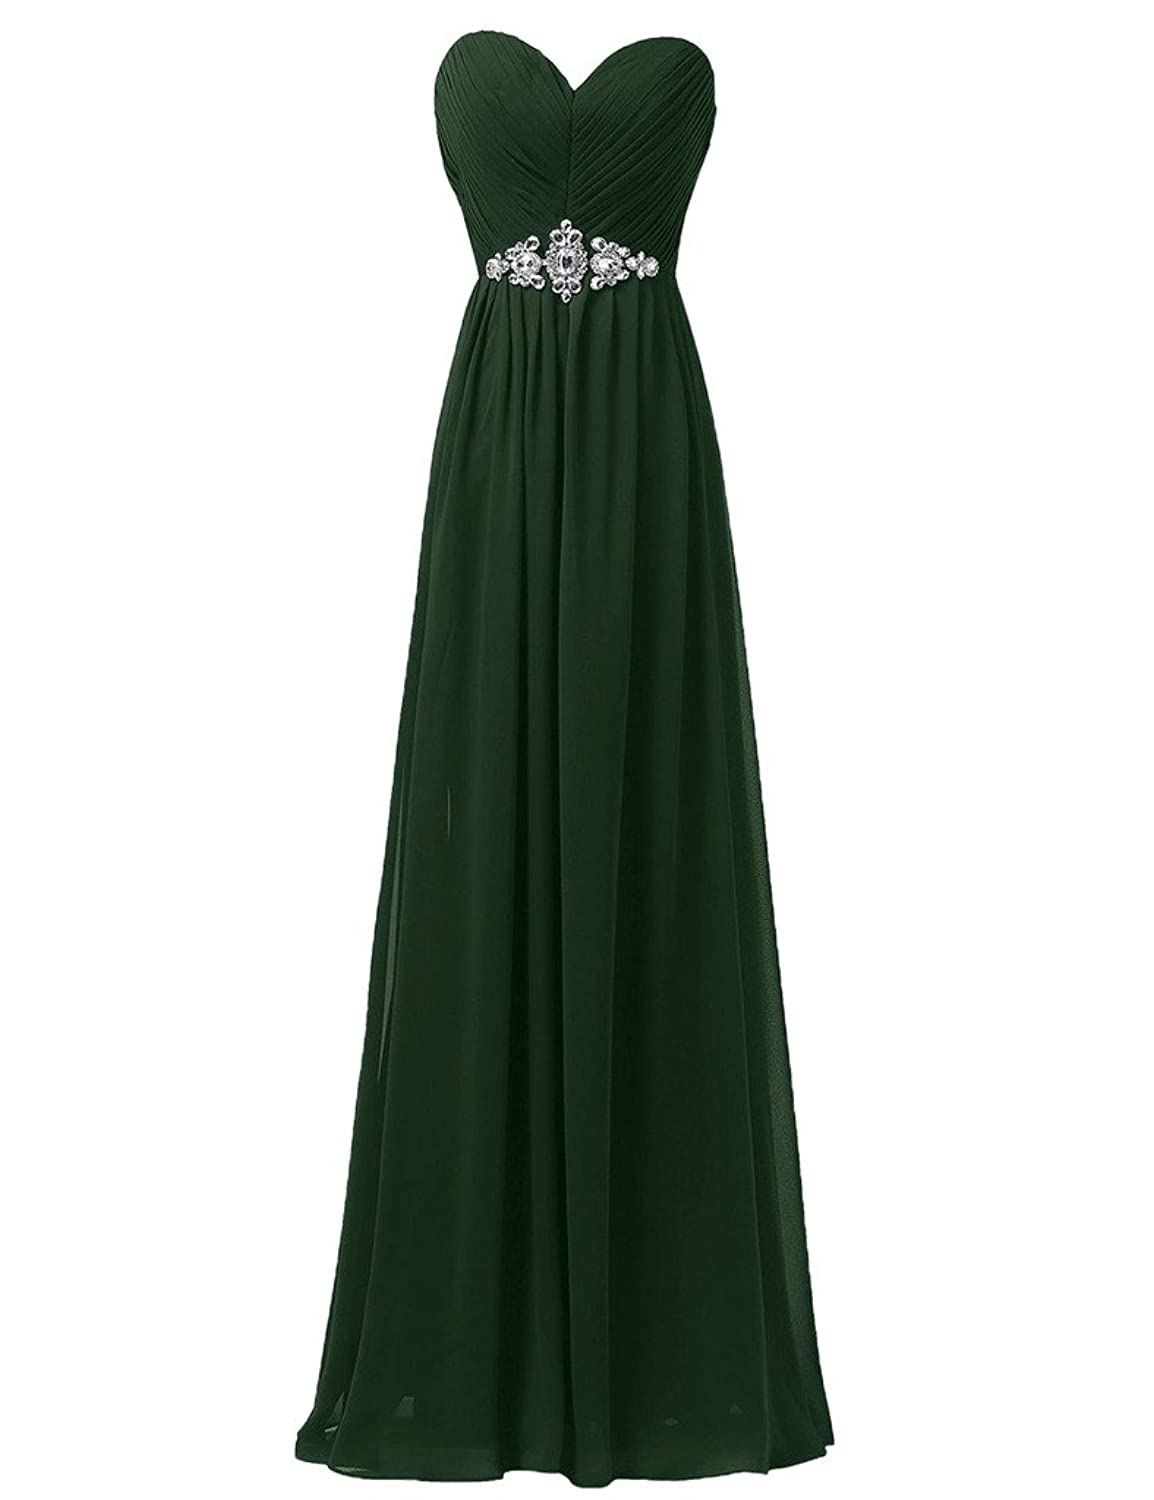 Sunvary Simple A-Line Sweetheart Neckline Chiffon Party Dresses Bridesmaid Gowns